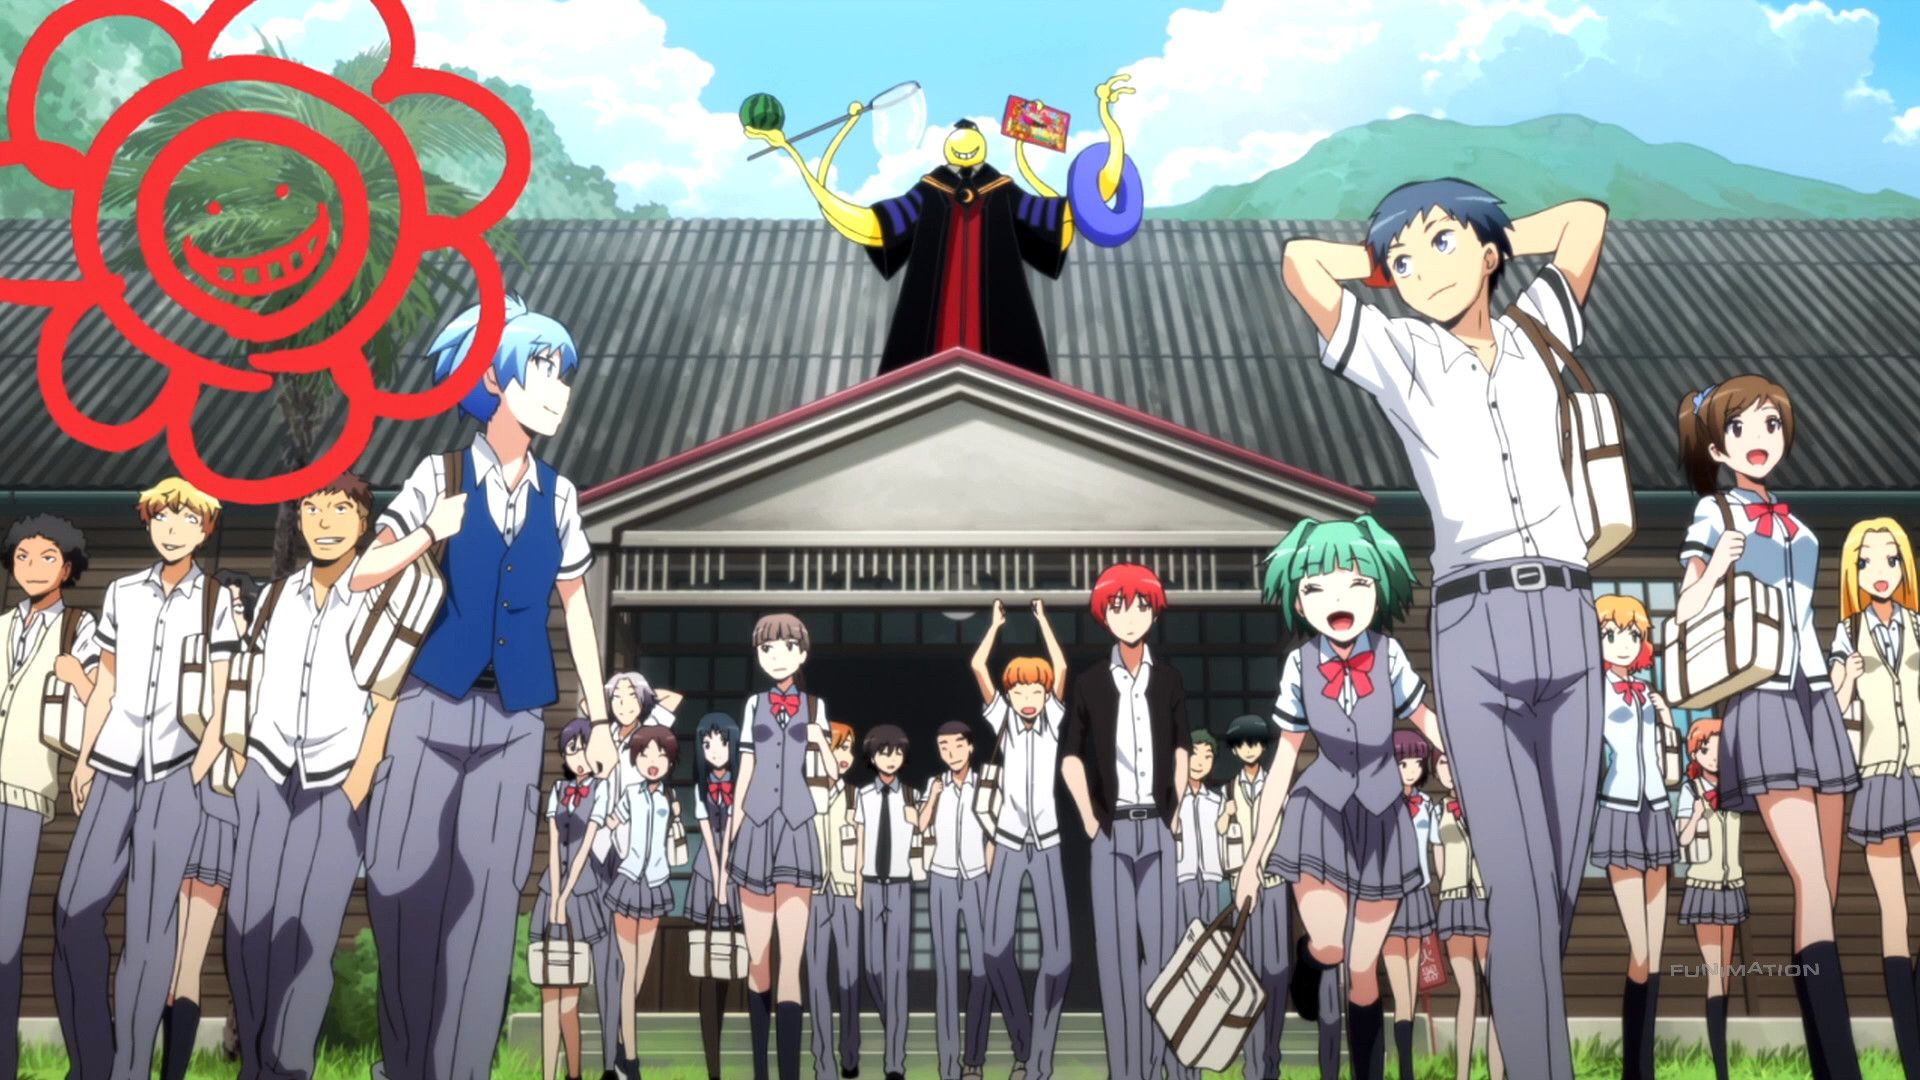 1920x1080 Anime Wallpapers Assasination Classroom HD 4K